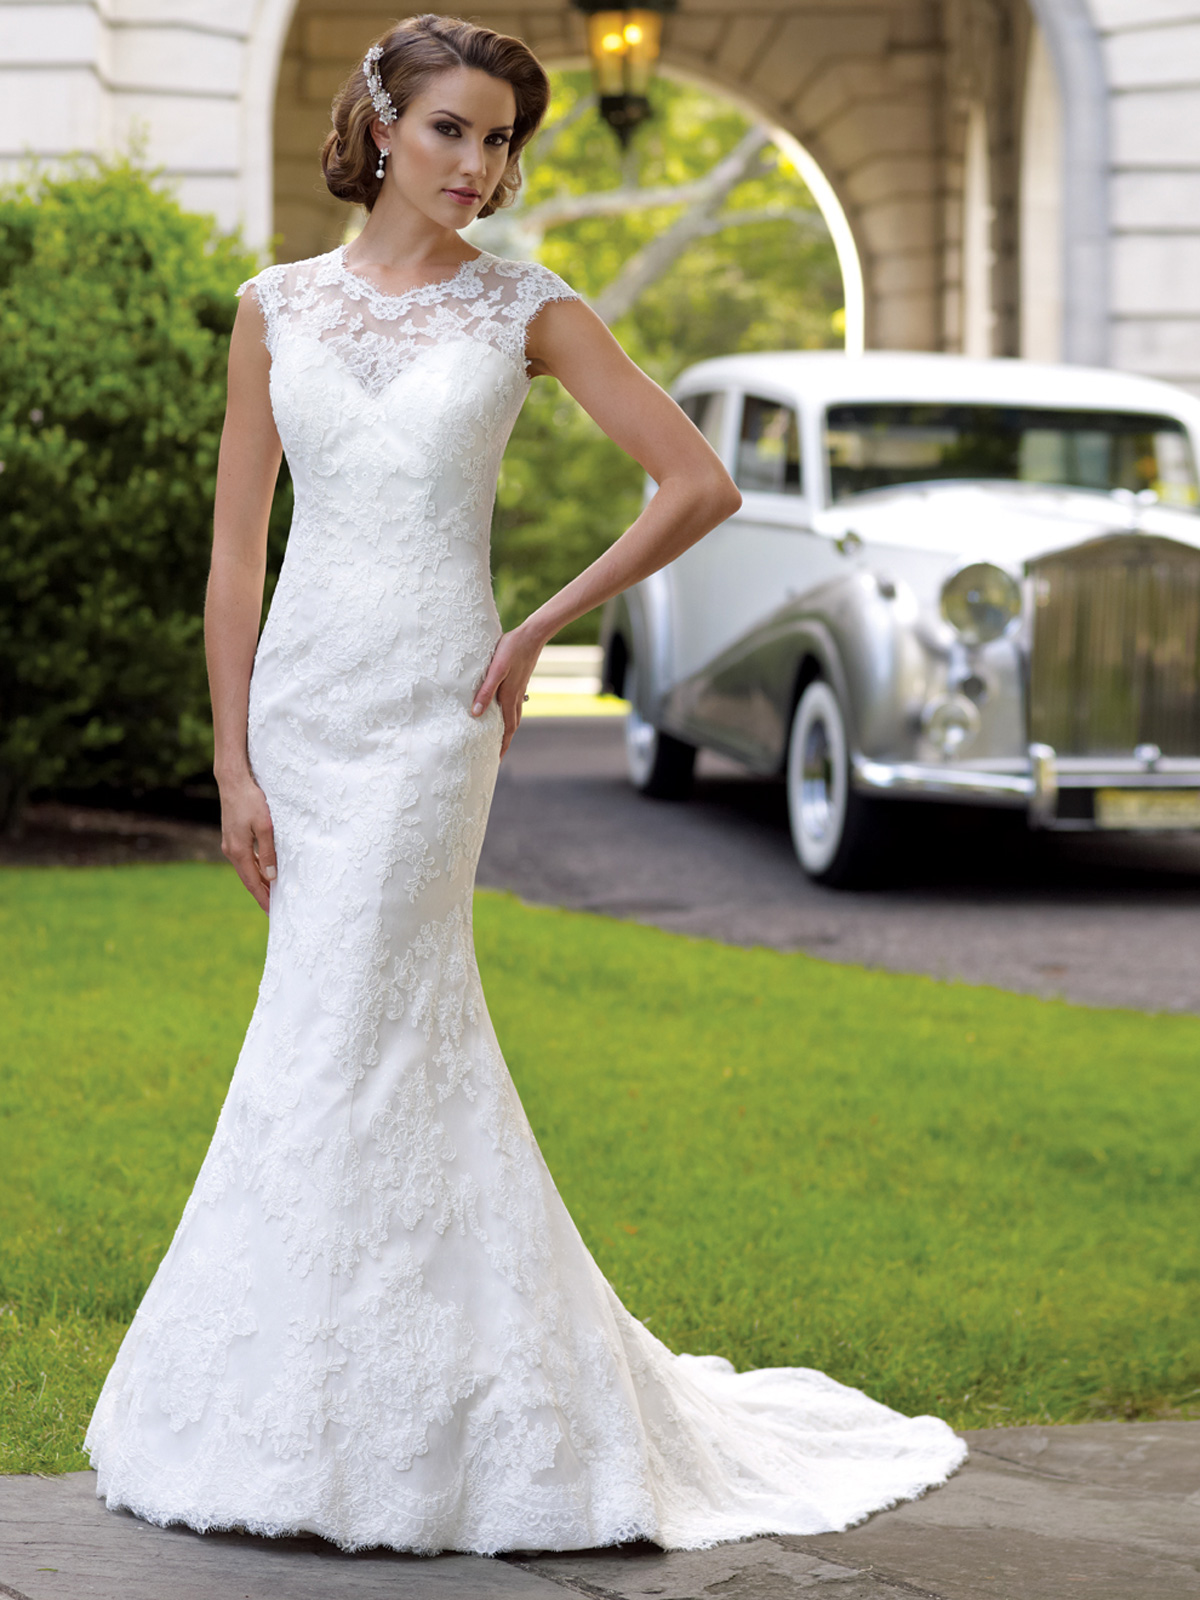 Jewel neckline lace zelda wedding dress david tutera by mon cheri jewel neckline lace wedding gown zelda david tutera for mon cheri 113207 junglespirit Choice Image